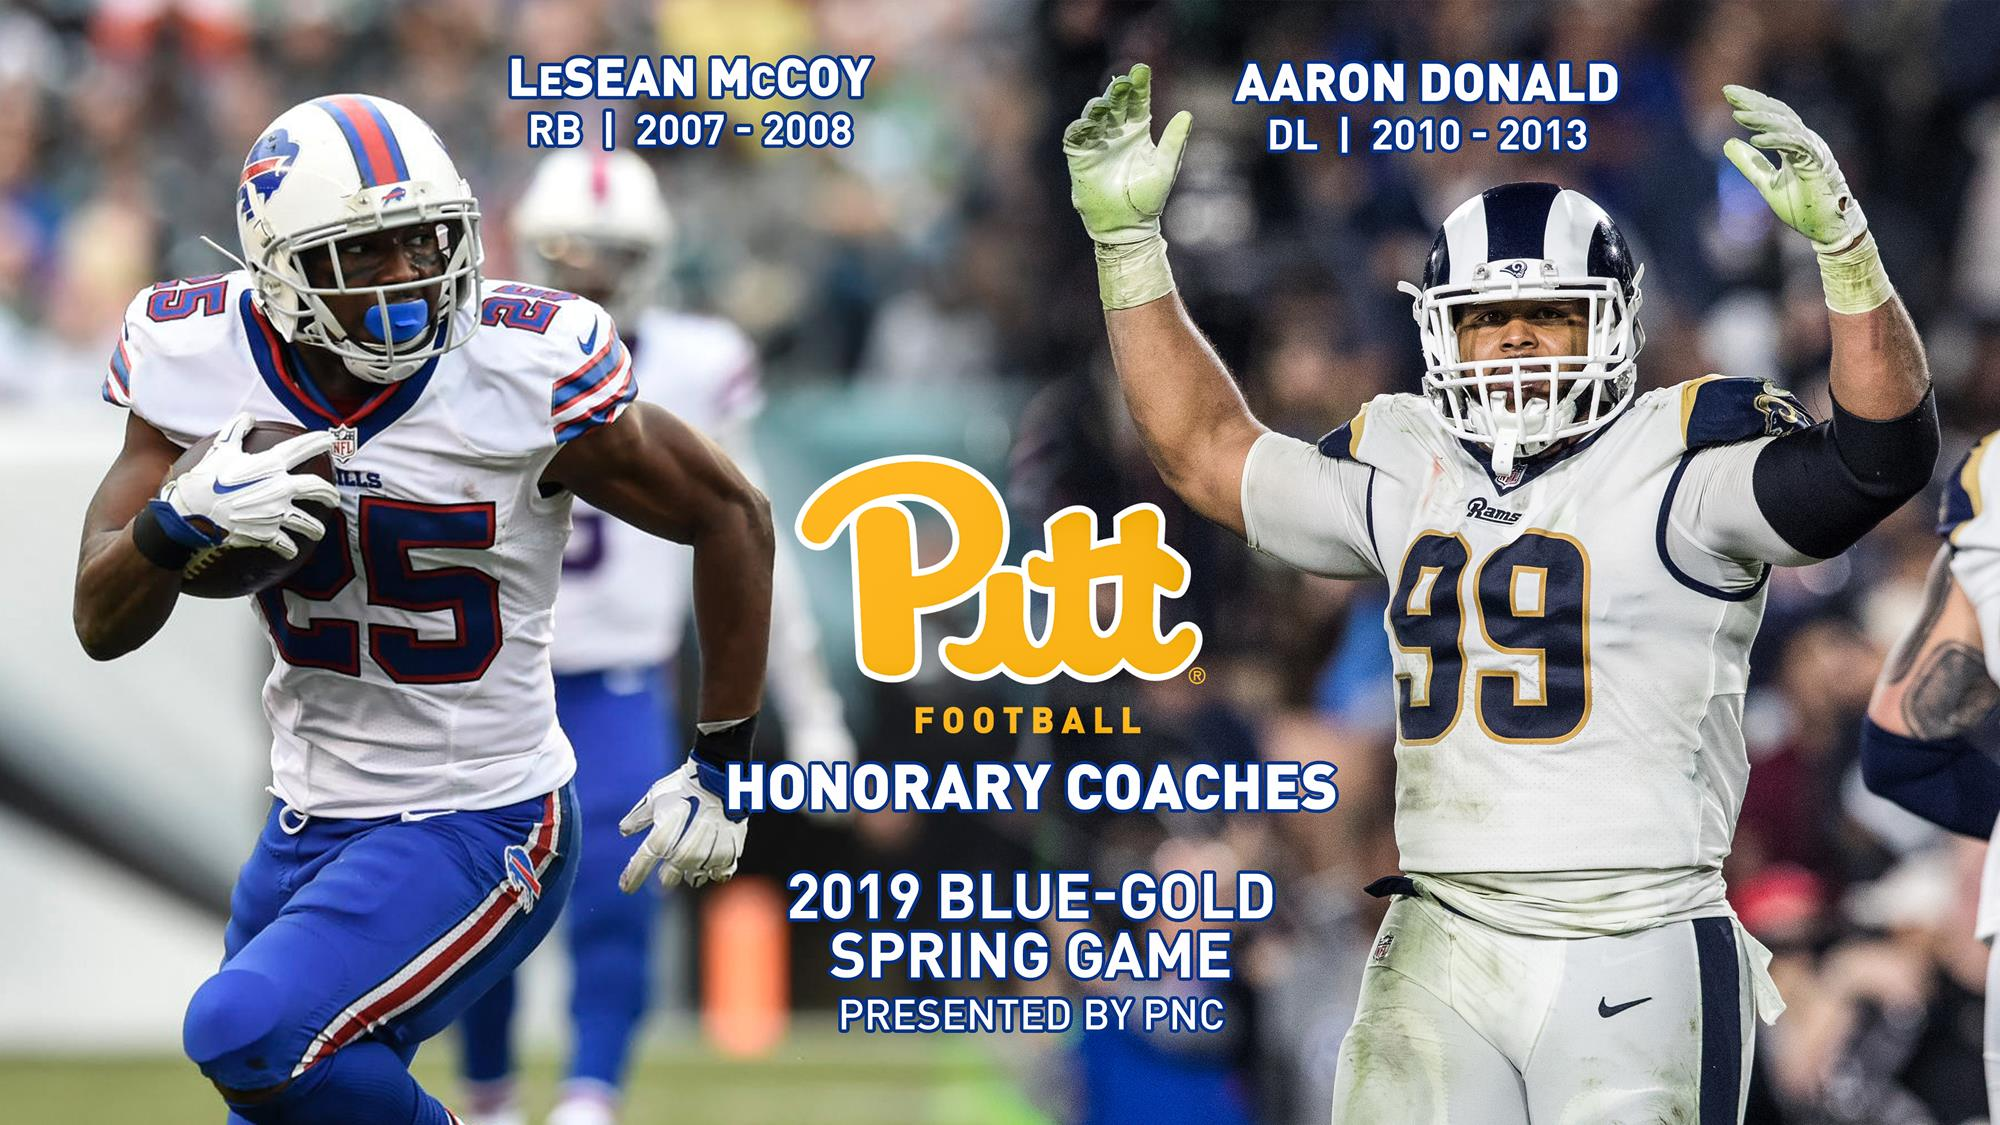 newest 06c43 823ce NFL Stars Aaron Donald and LeSean McCoy to Serve as Honorary ...